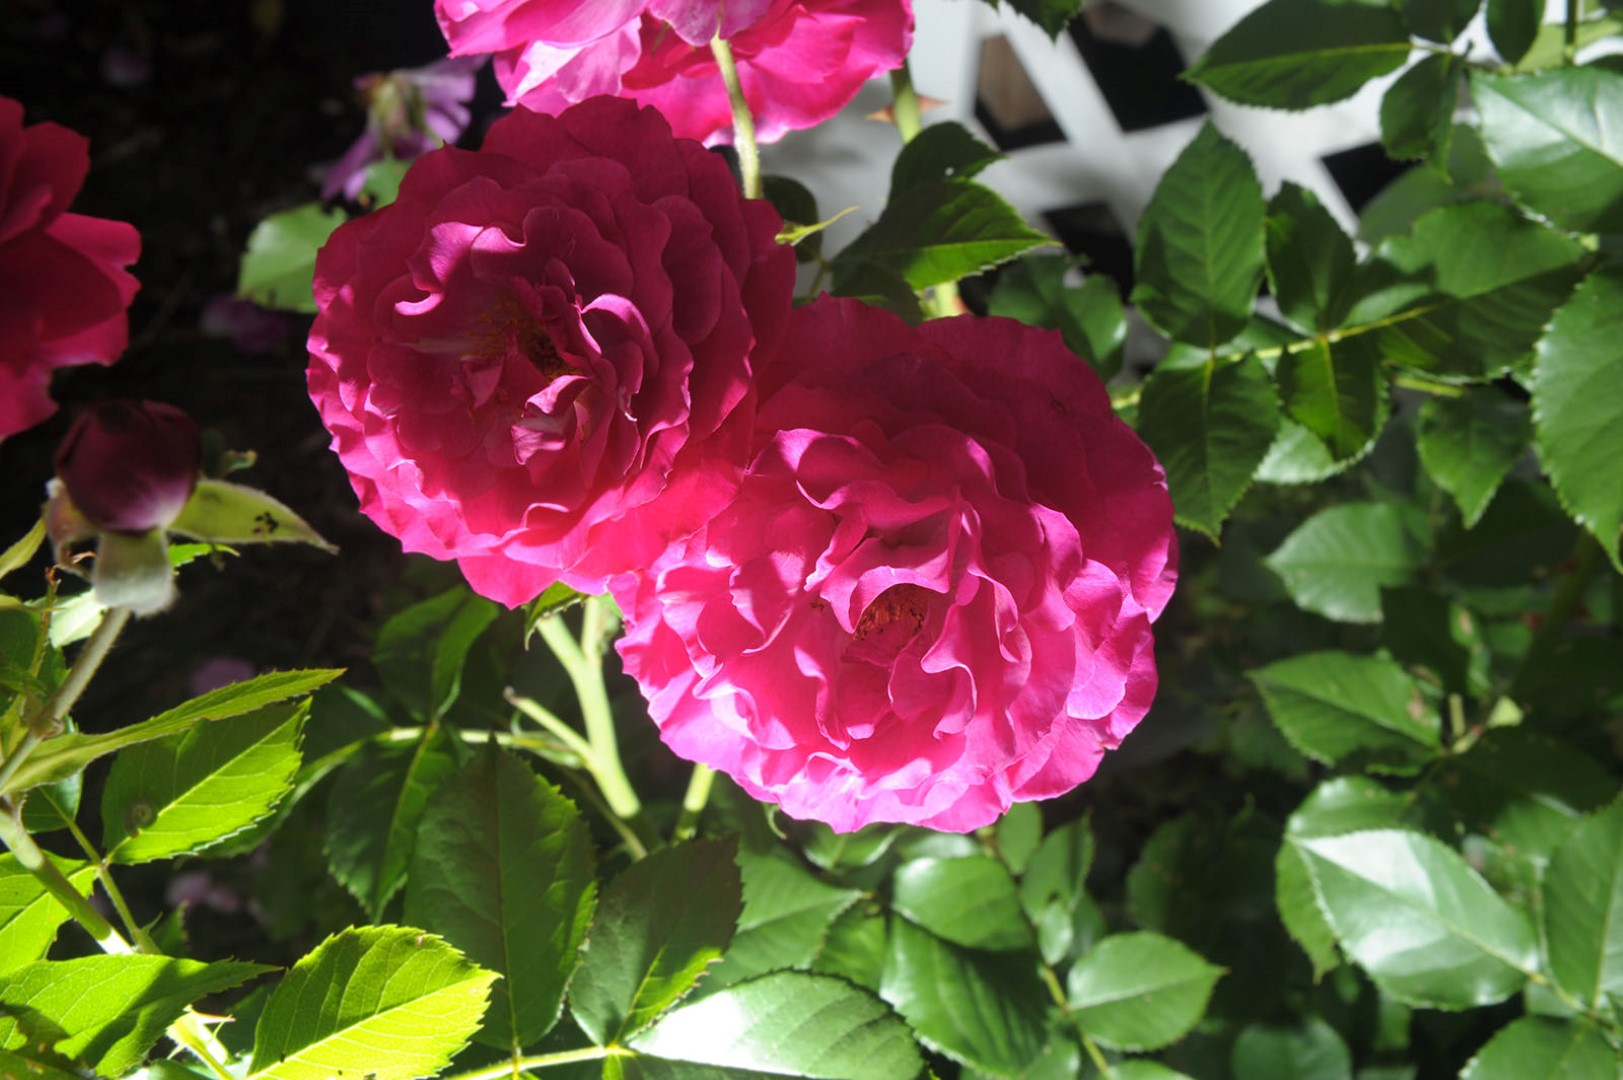 Roses in Bloom (photo)